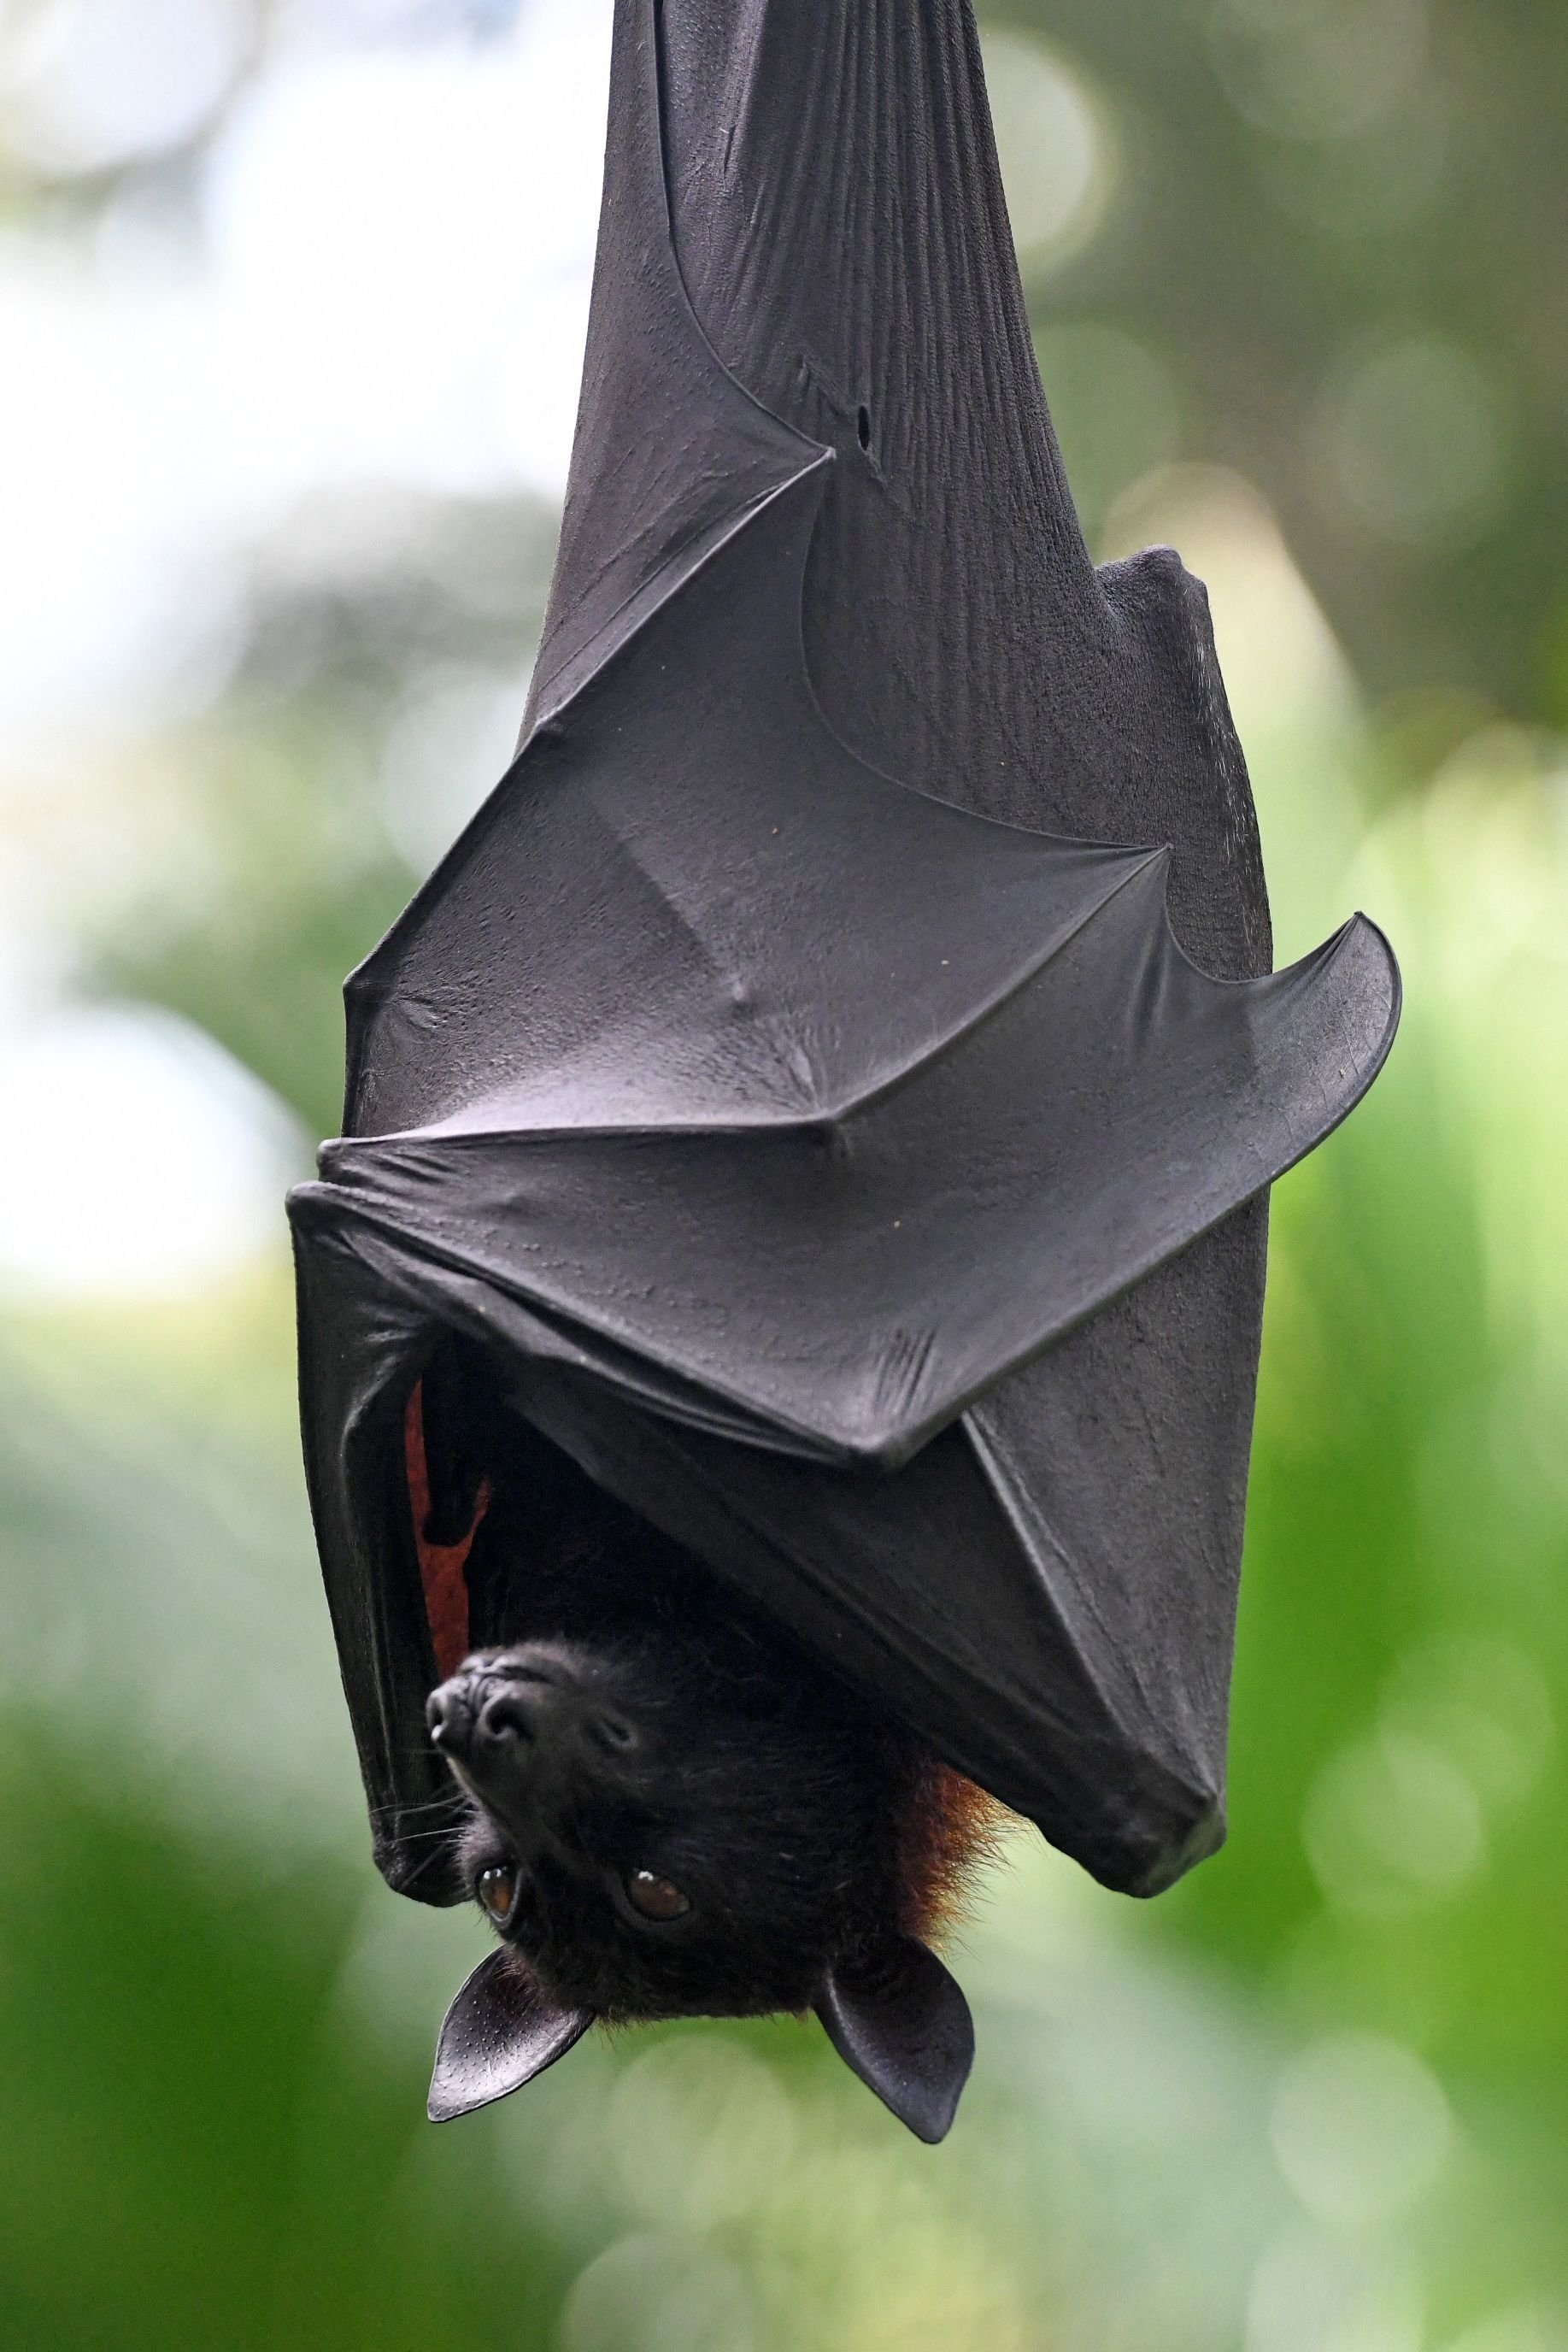 This file photo taken on July 6, 2020 shows a Malayan flying fox hanging on a branch in an enclosure at the Singapore Zoo in Singapore.  (AFP Photo)